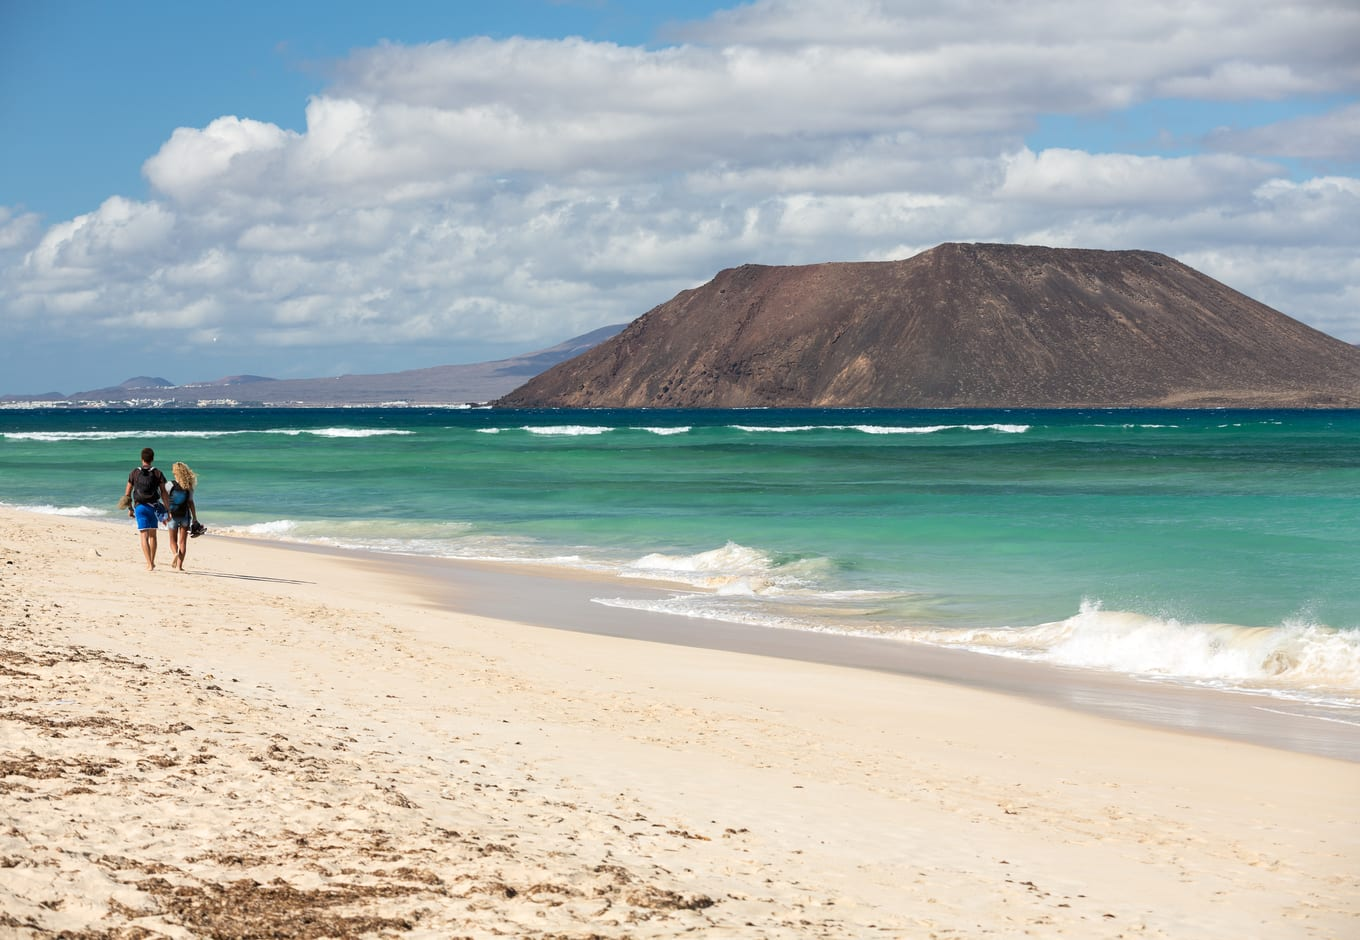 View of Lobos island from a Beach in Corralejo, Canary Islands, Spain